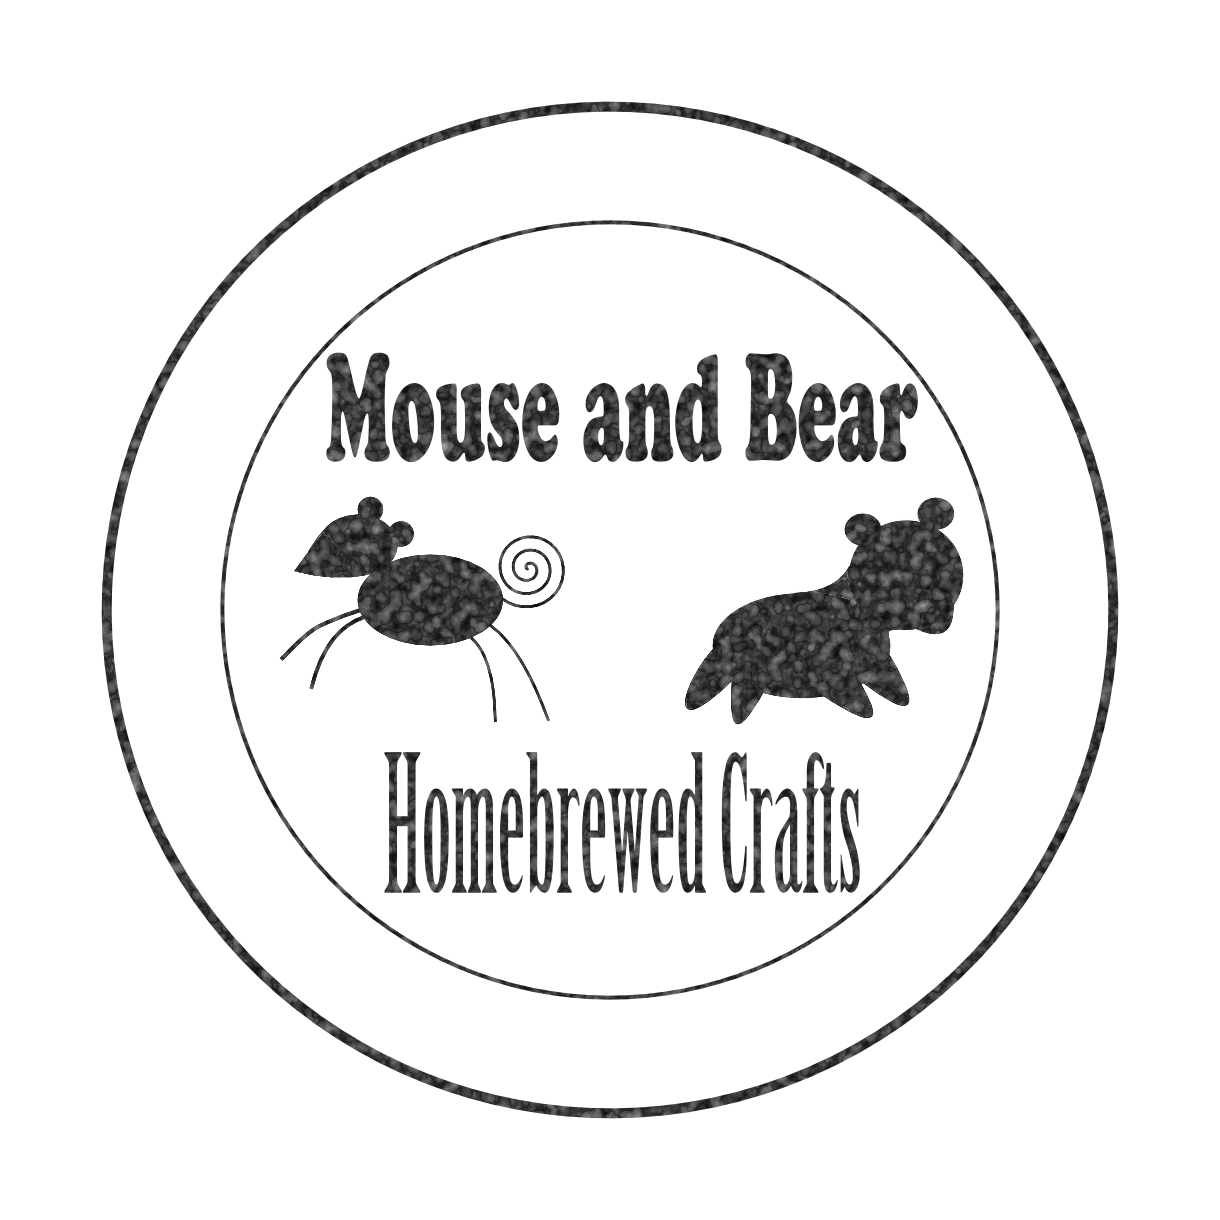 Logos for Mouse and Bear Homebrewed Crafts - image 1 - student project